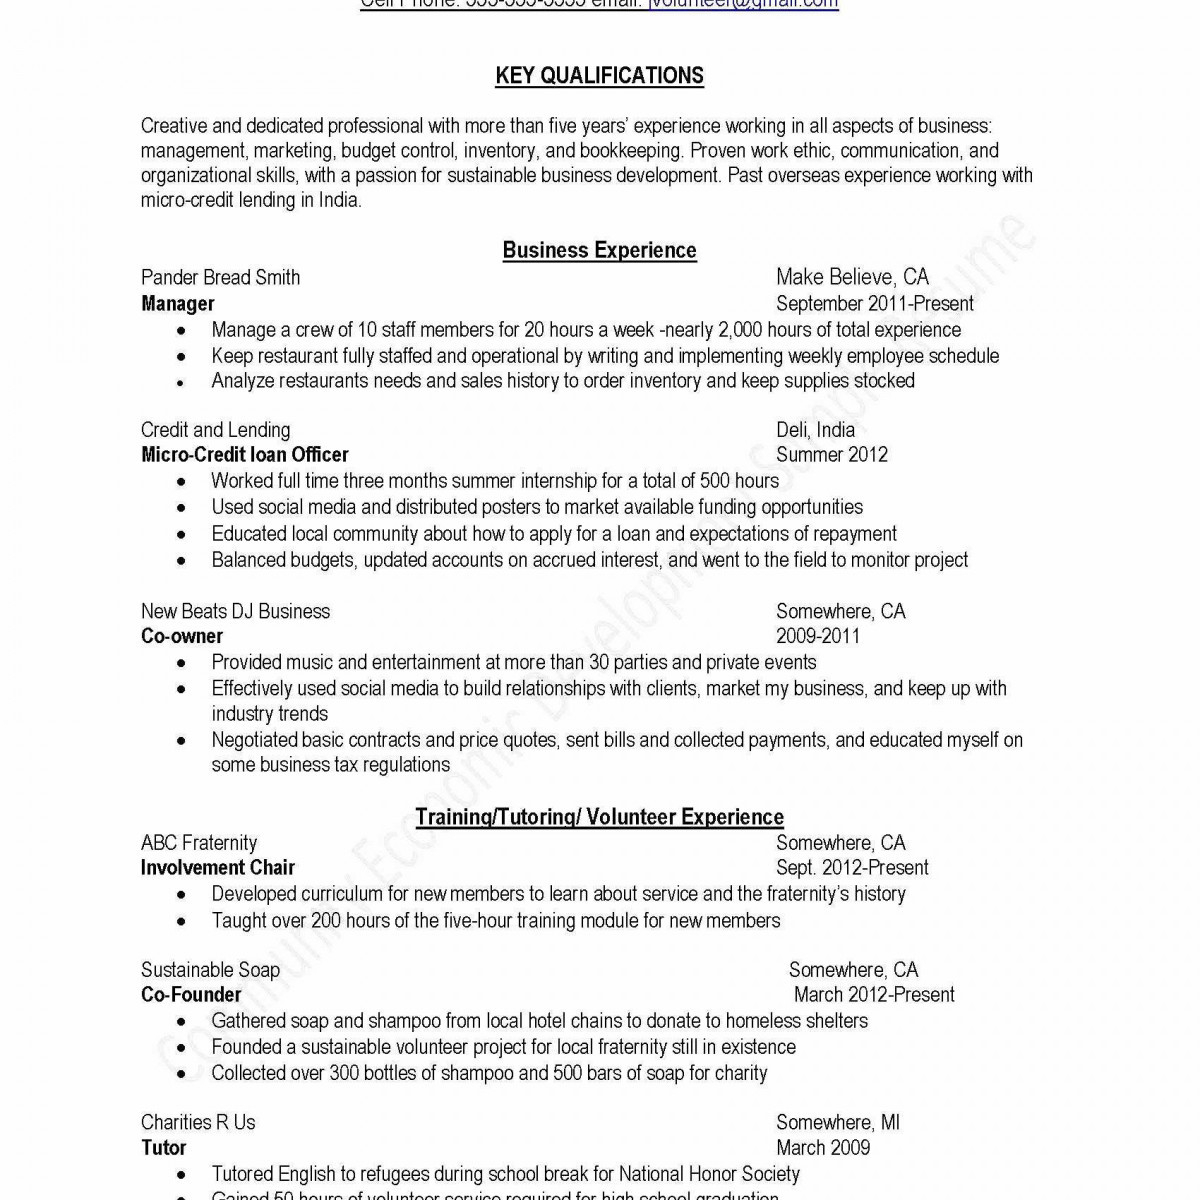 A Professional Resume - Resume En Ingles Charming Sample College Application Resume Lovely